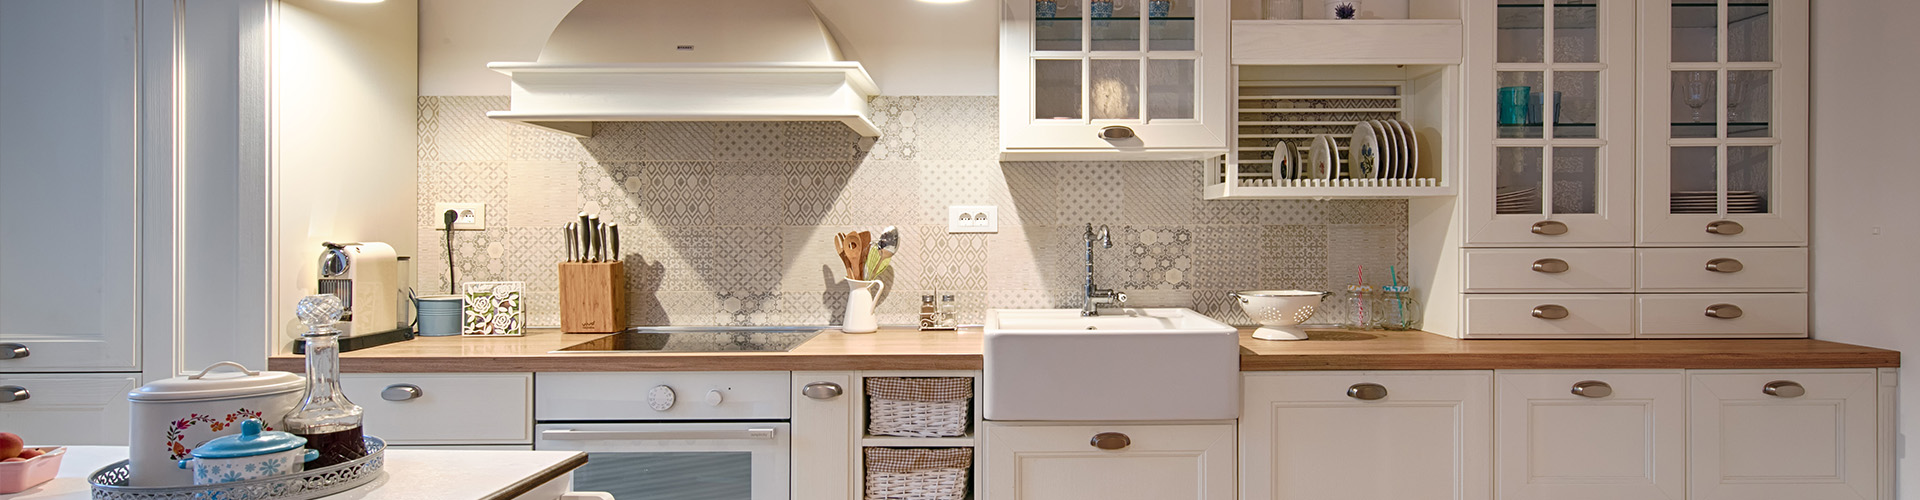 Best Kitchen interior designers in Bangalore